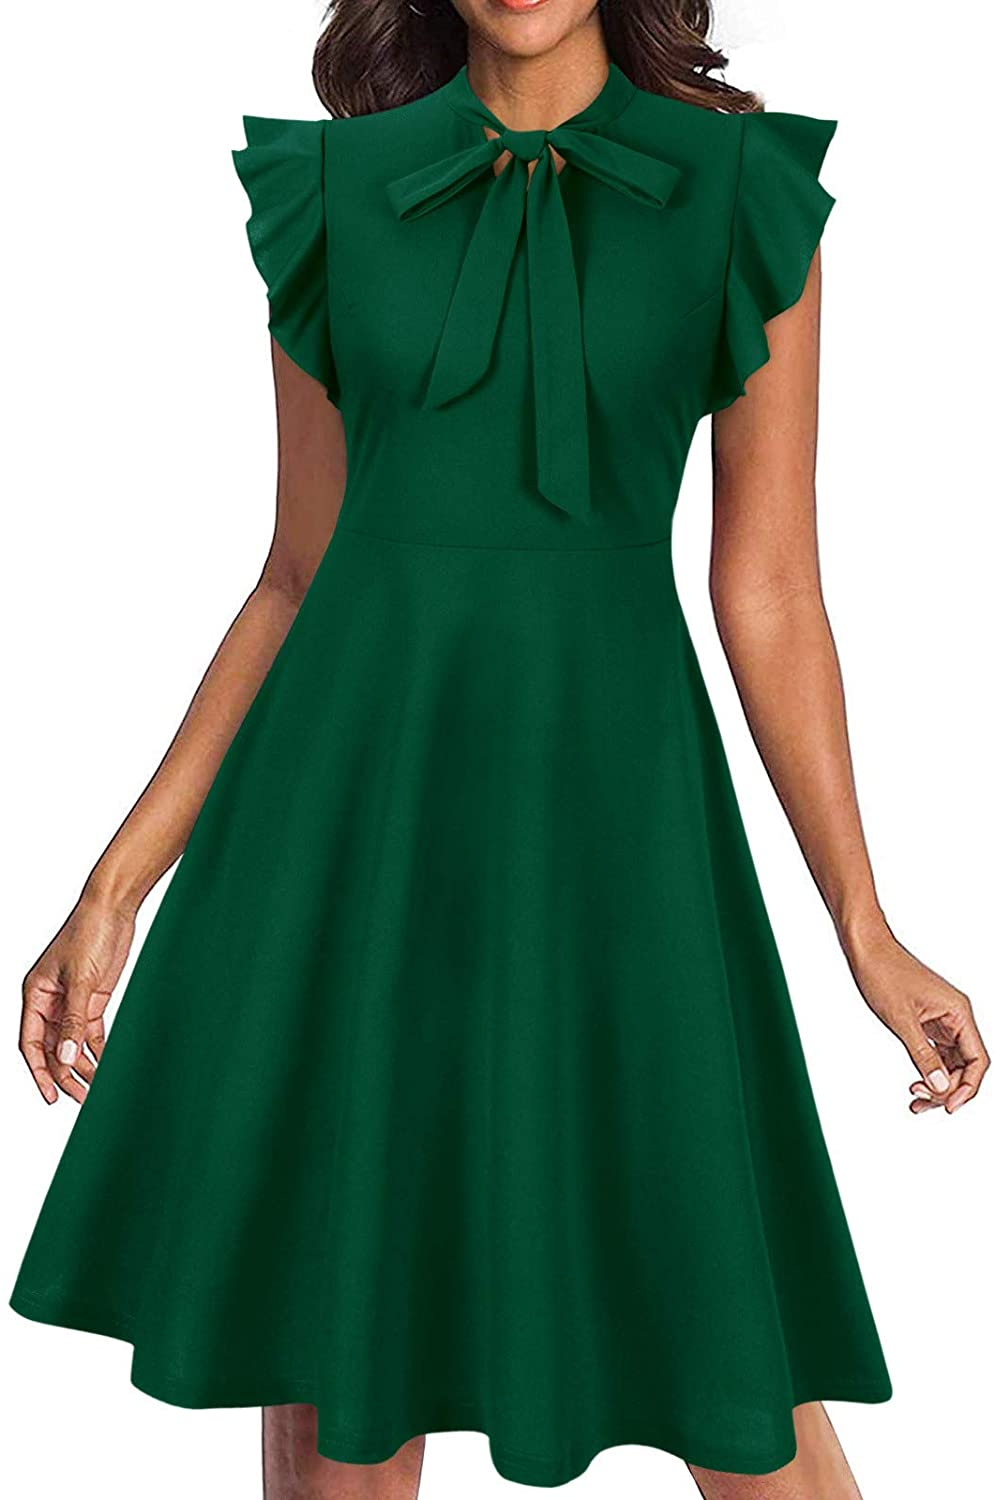 Moyabo Women's Tie Neck Vintage Ruffle Sleeveless A Line Swing Casual Cocktail Party Dresses